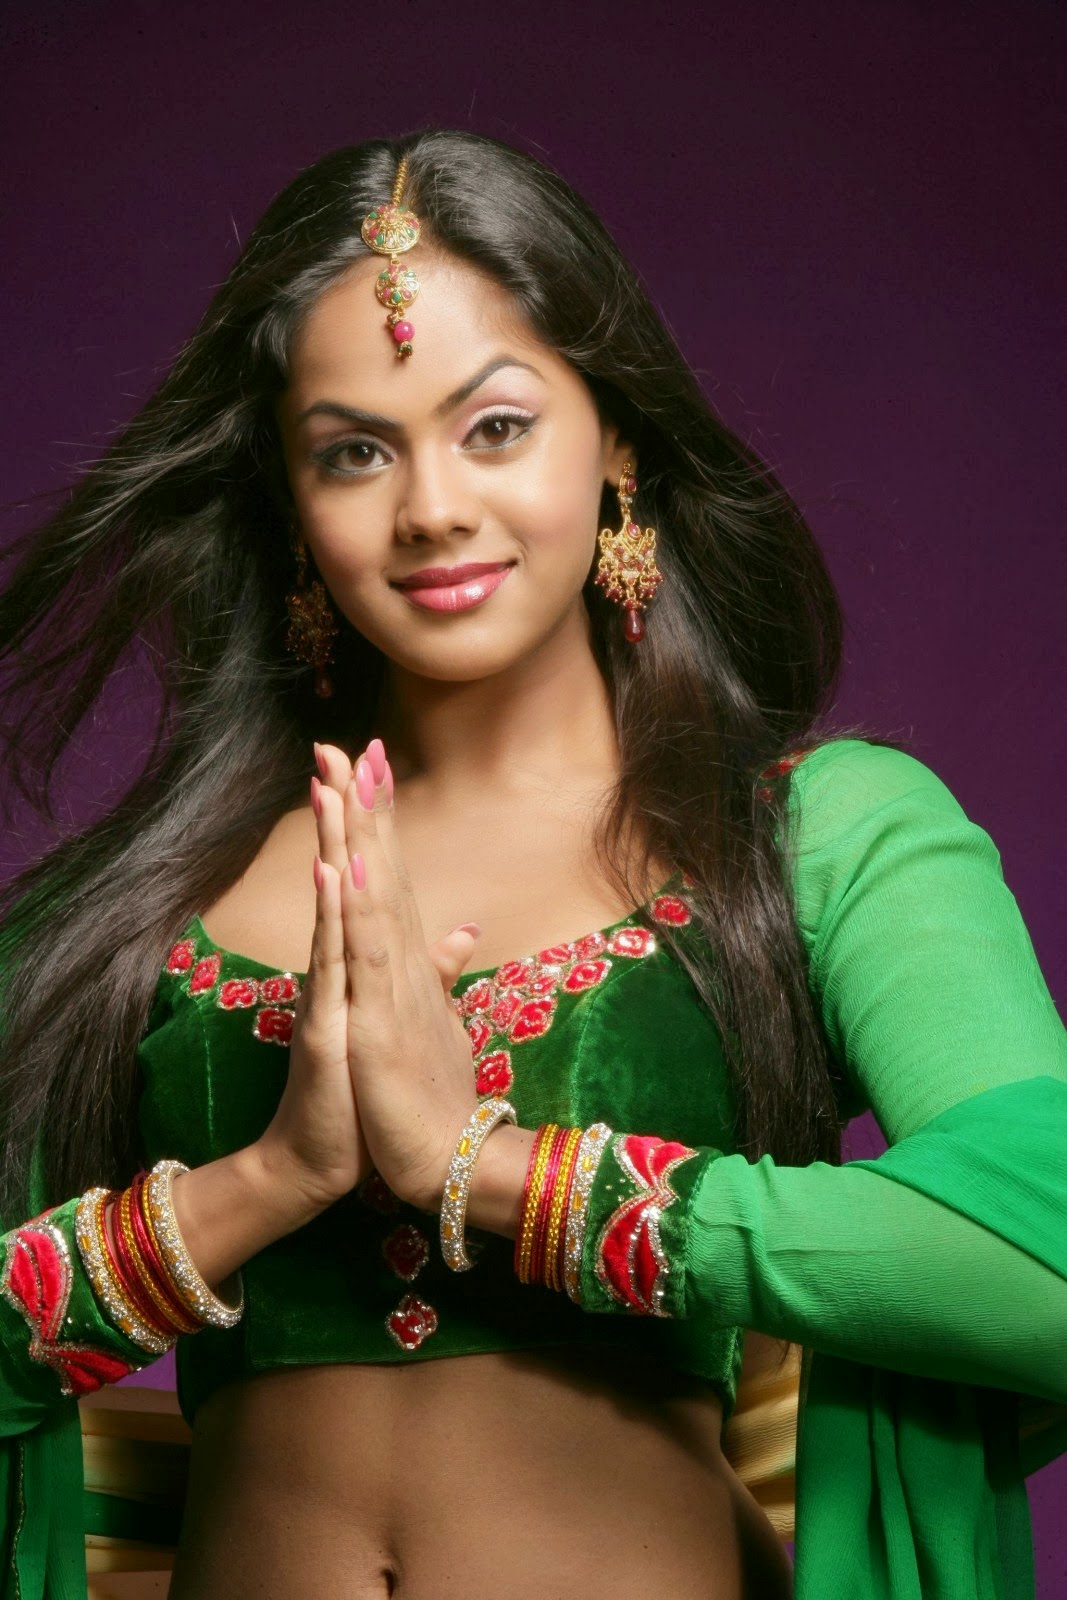 Discussion on this topic: Nell Tiger Free, karthika-nair/